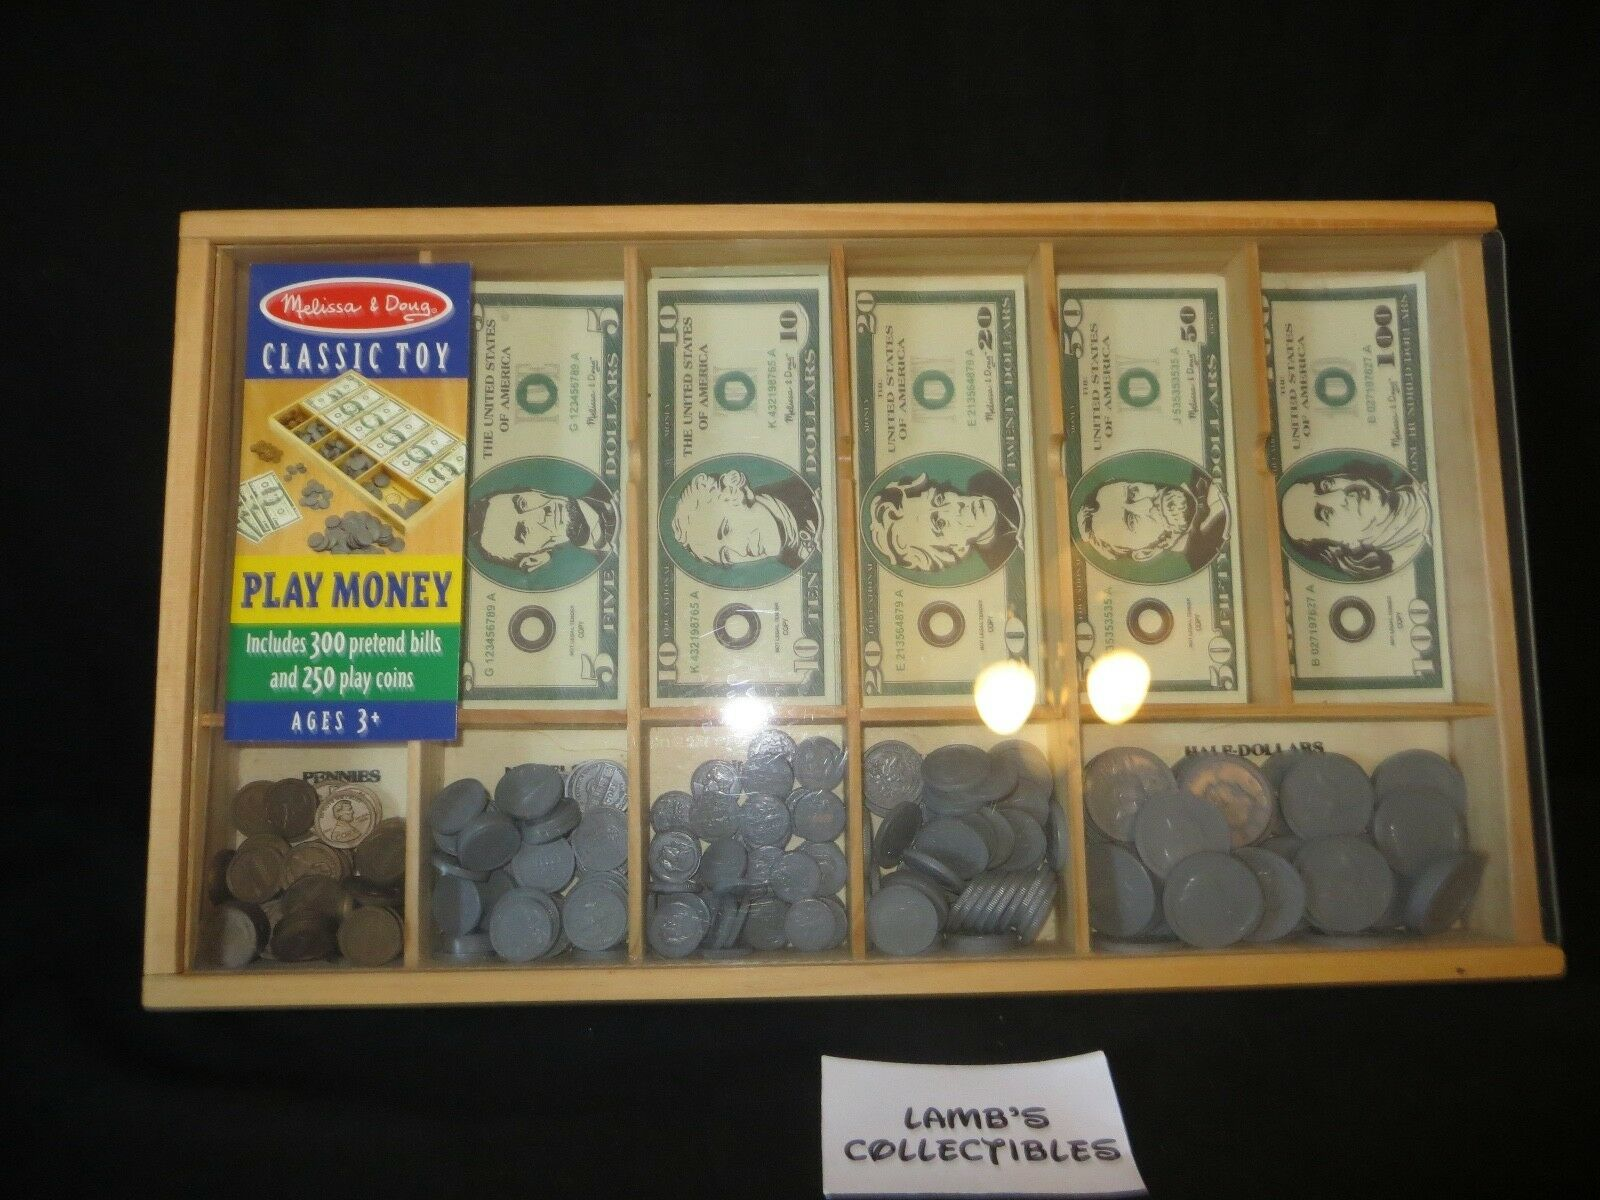 Primary image for Melissa & Doug classic toy play money in wooden case approx 300 pretend bills